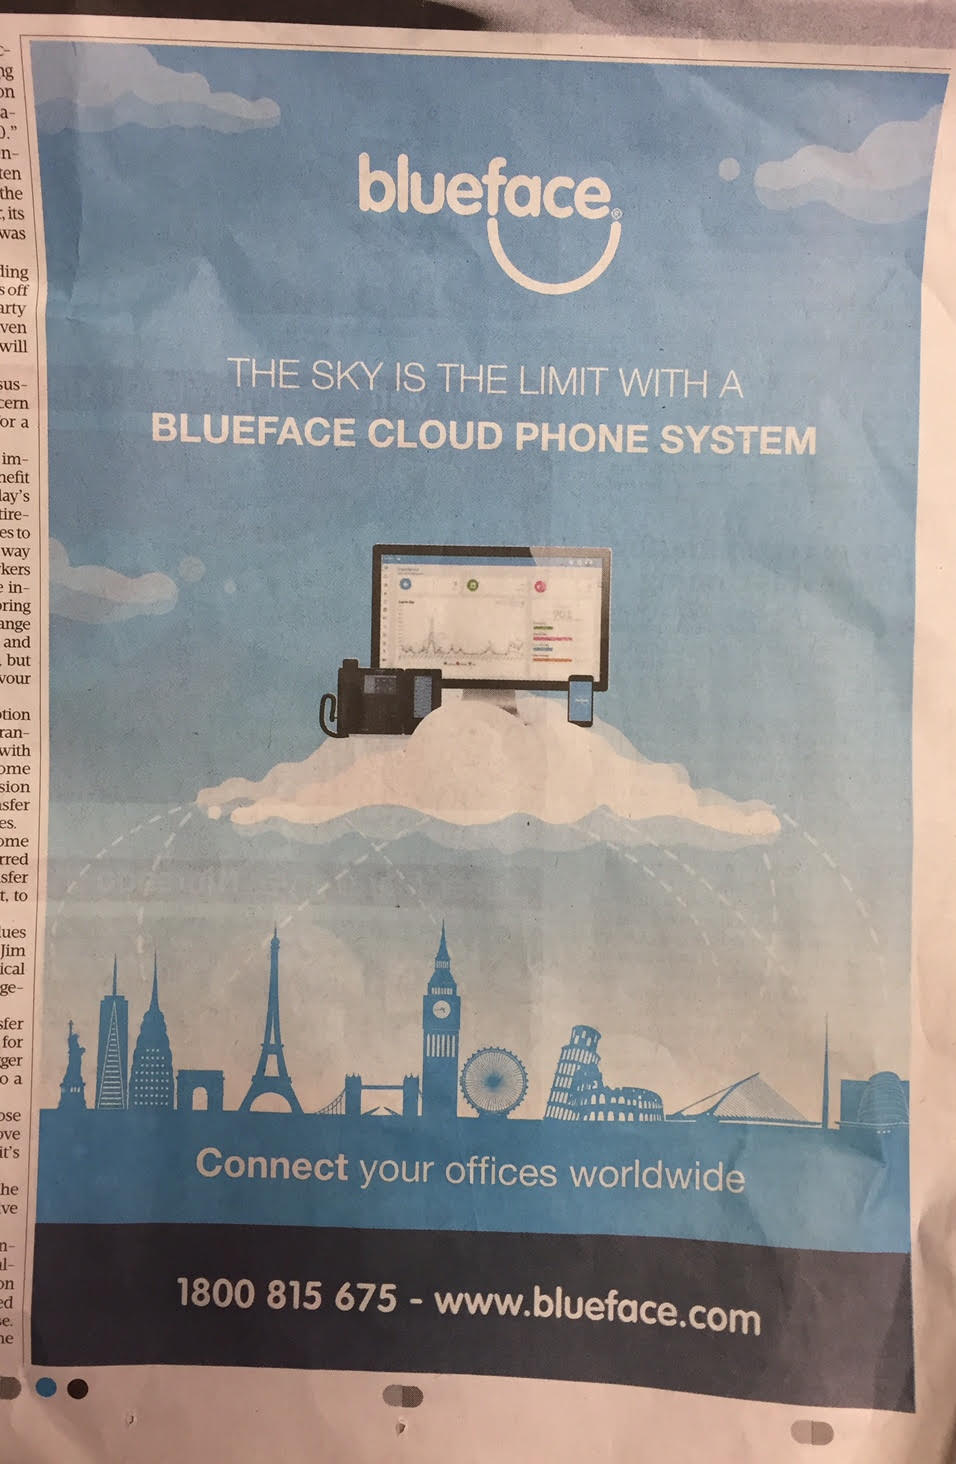 Blueface – The sky is the limit with a Blueface cloud phone system.